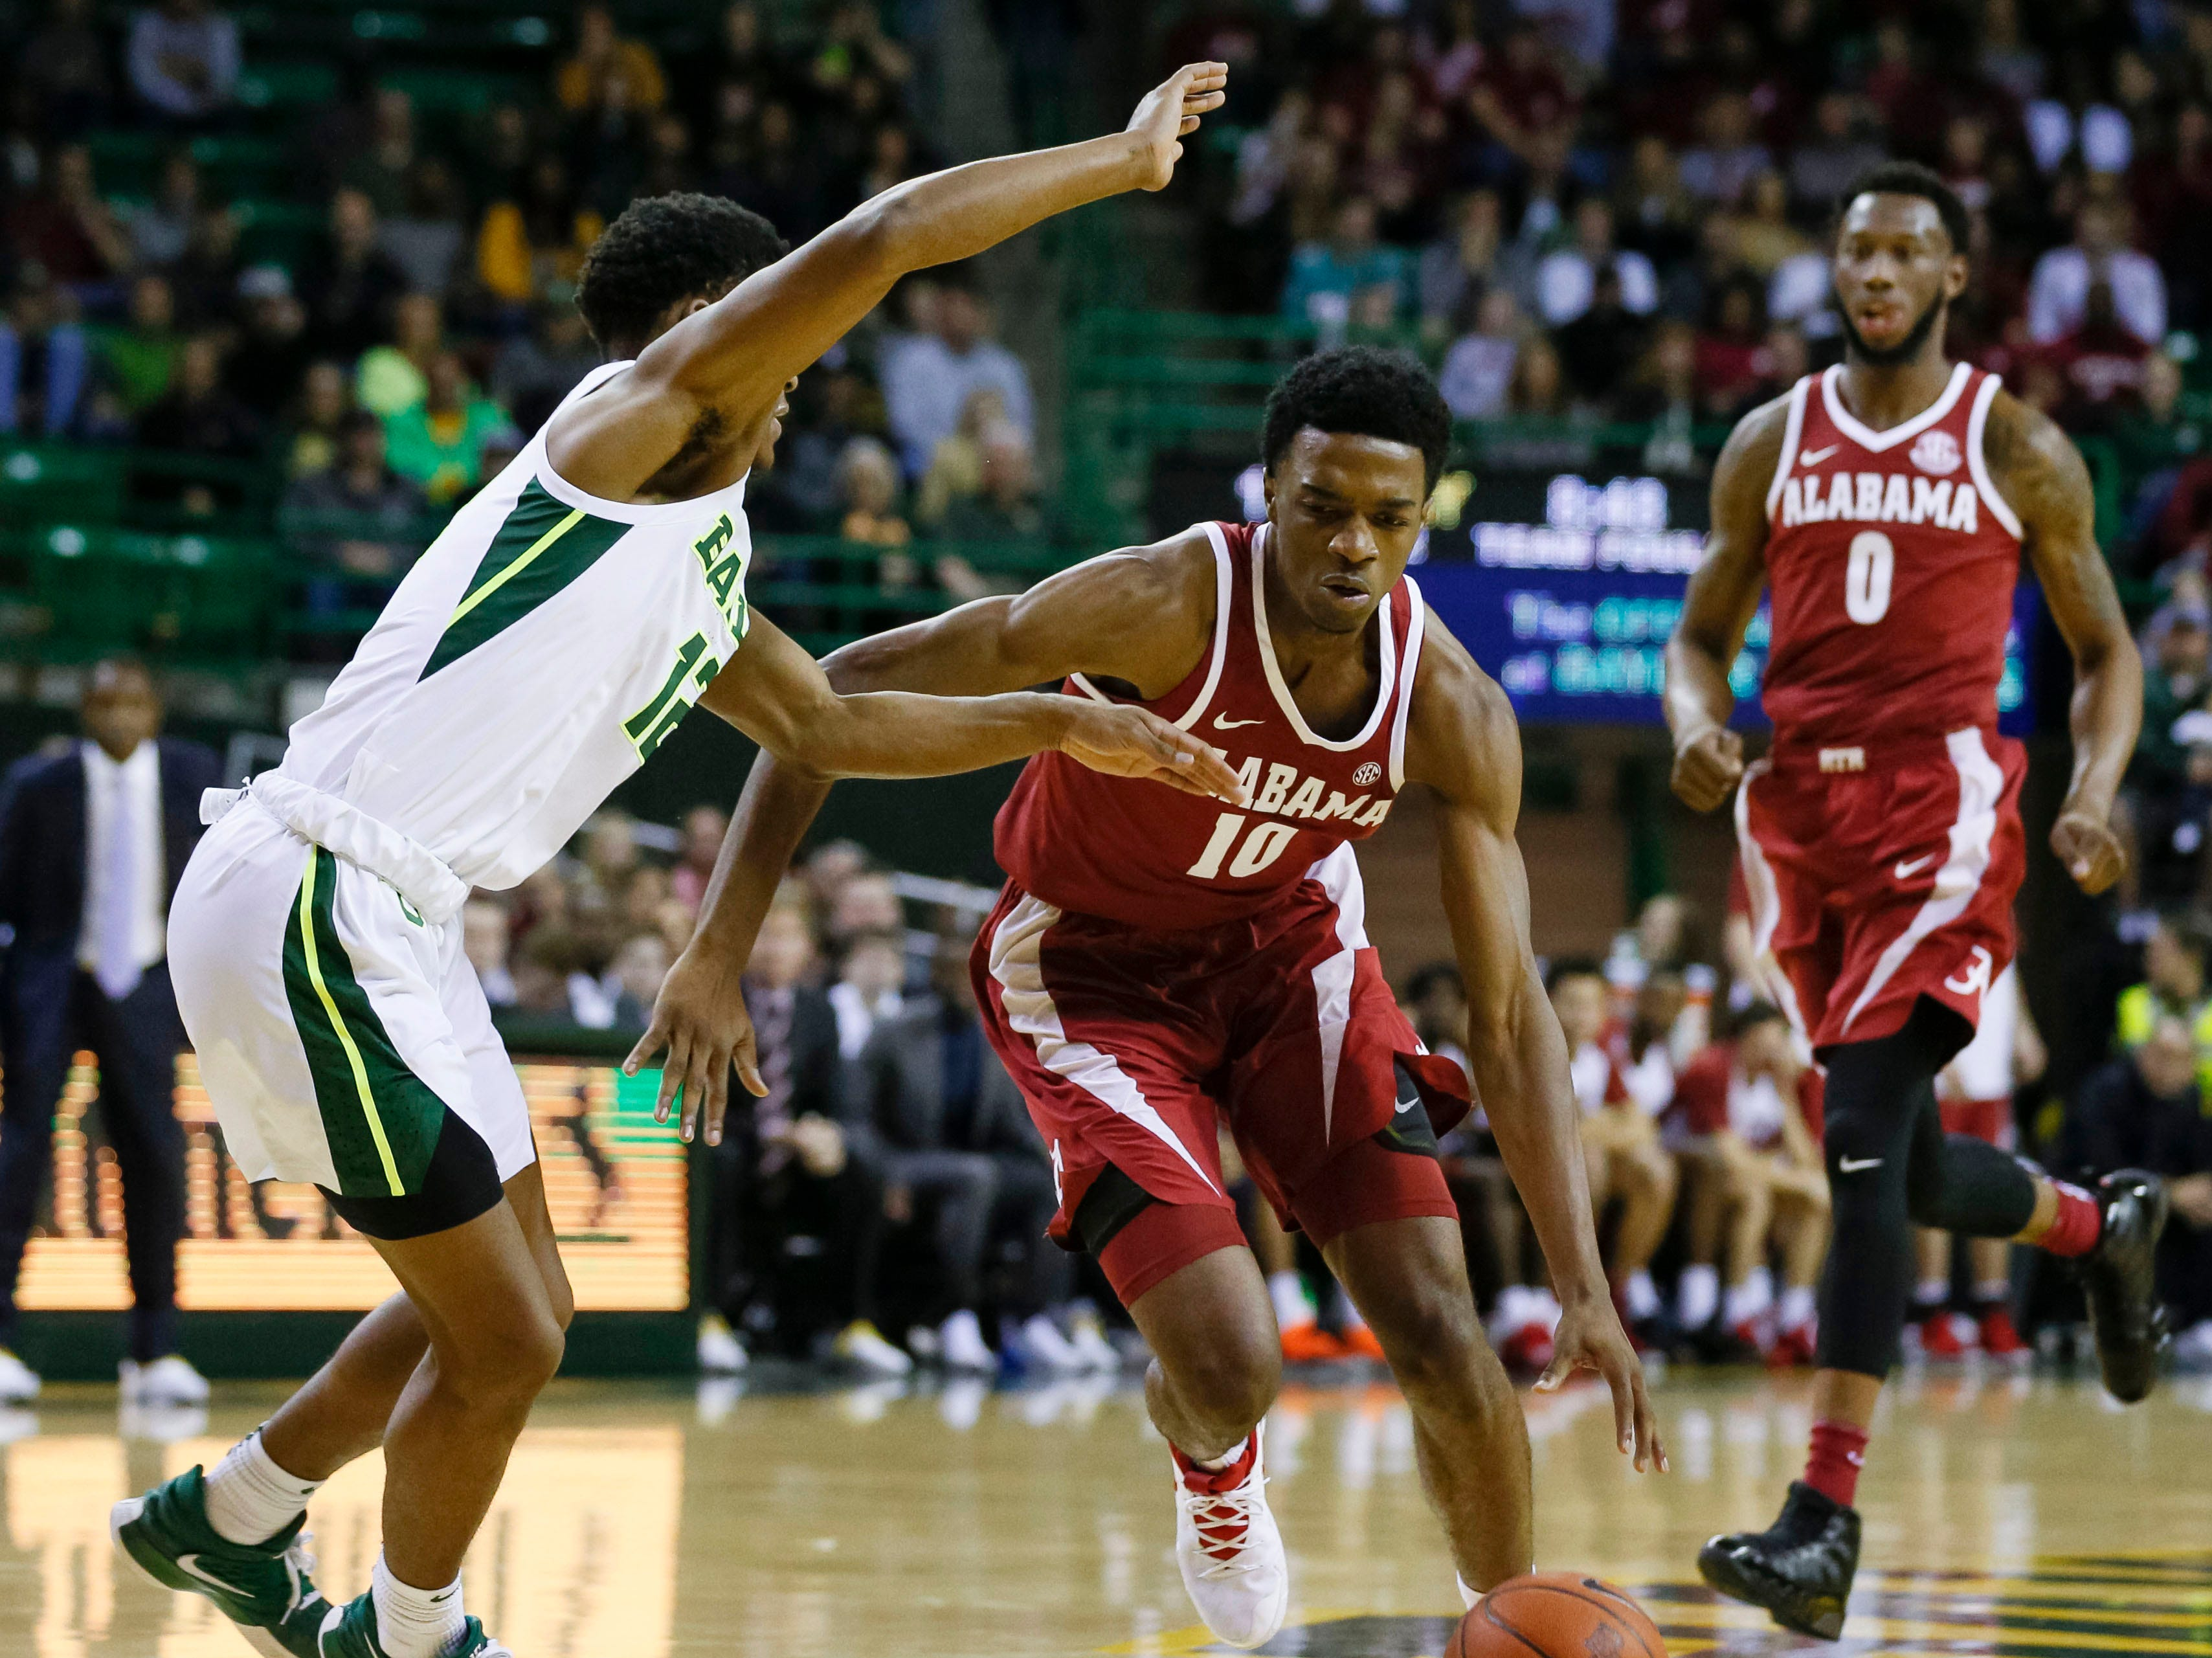 Jan 26, 2019; Waco, TX, USA; Alabama Crimson Tide guard Herbert Jones (10) dribbles the ball past Baylor Bears guard Jared Butler (12) during the first half at Ferrell Center. Mandatory Credit: Ray Carlin-USA TODAY Sports